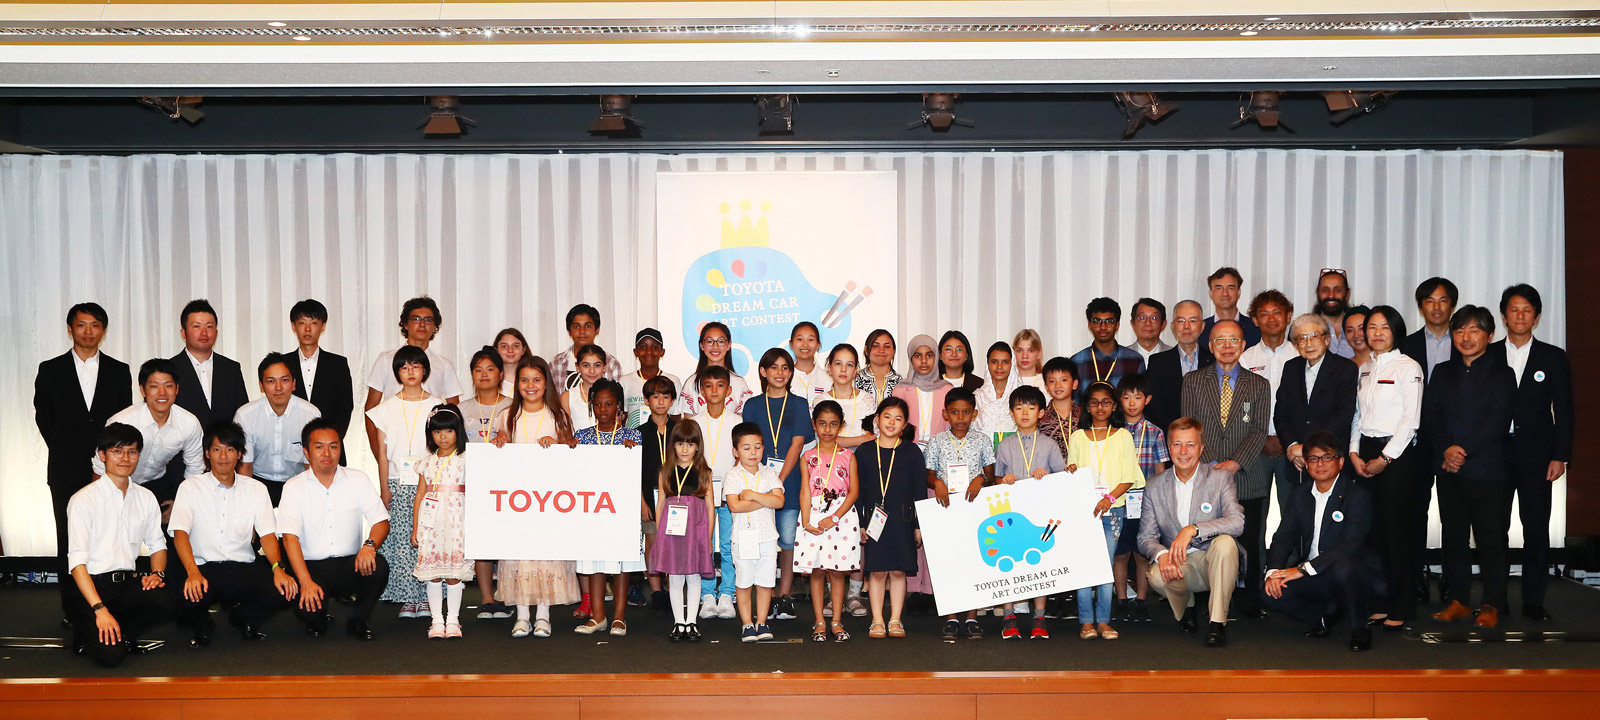 Finał 13. edycji Toyota Dream Car Art Contest - Ceremonia